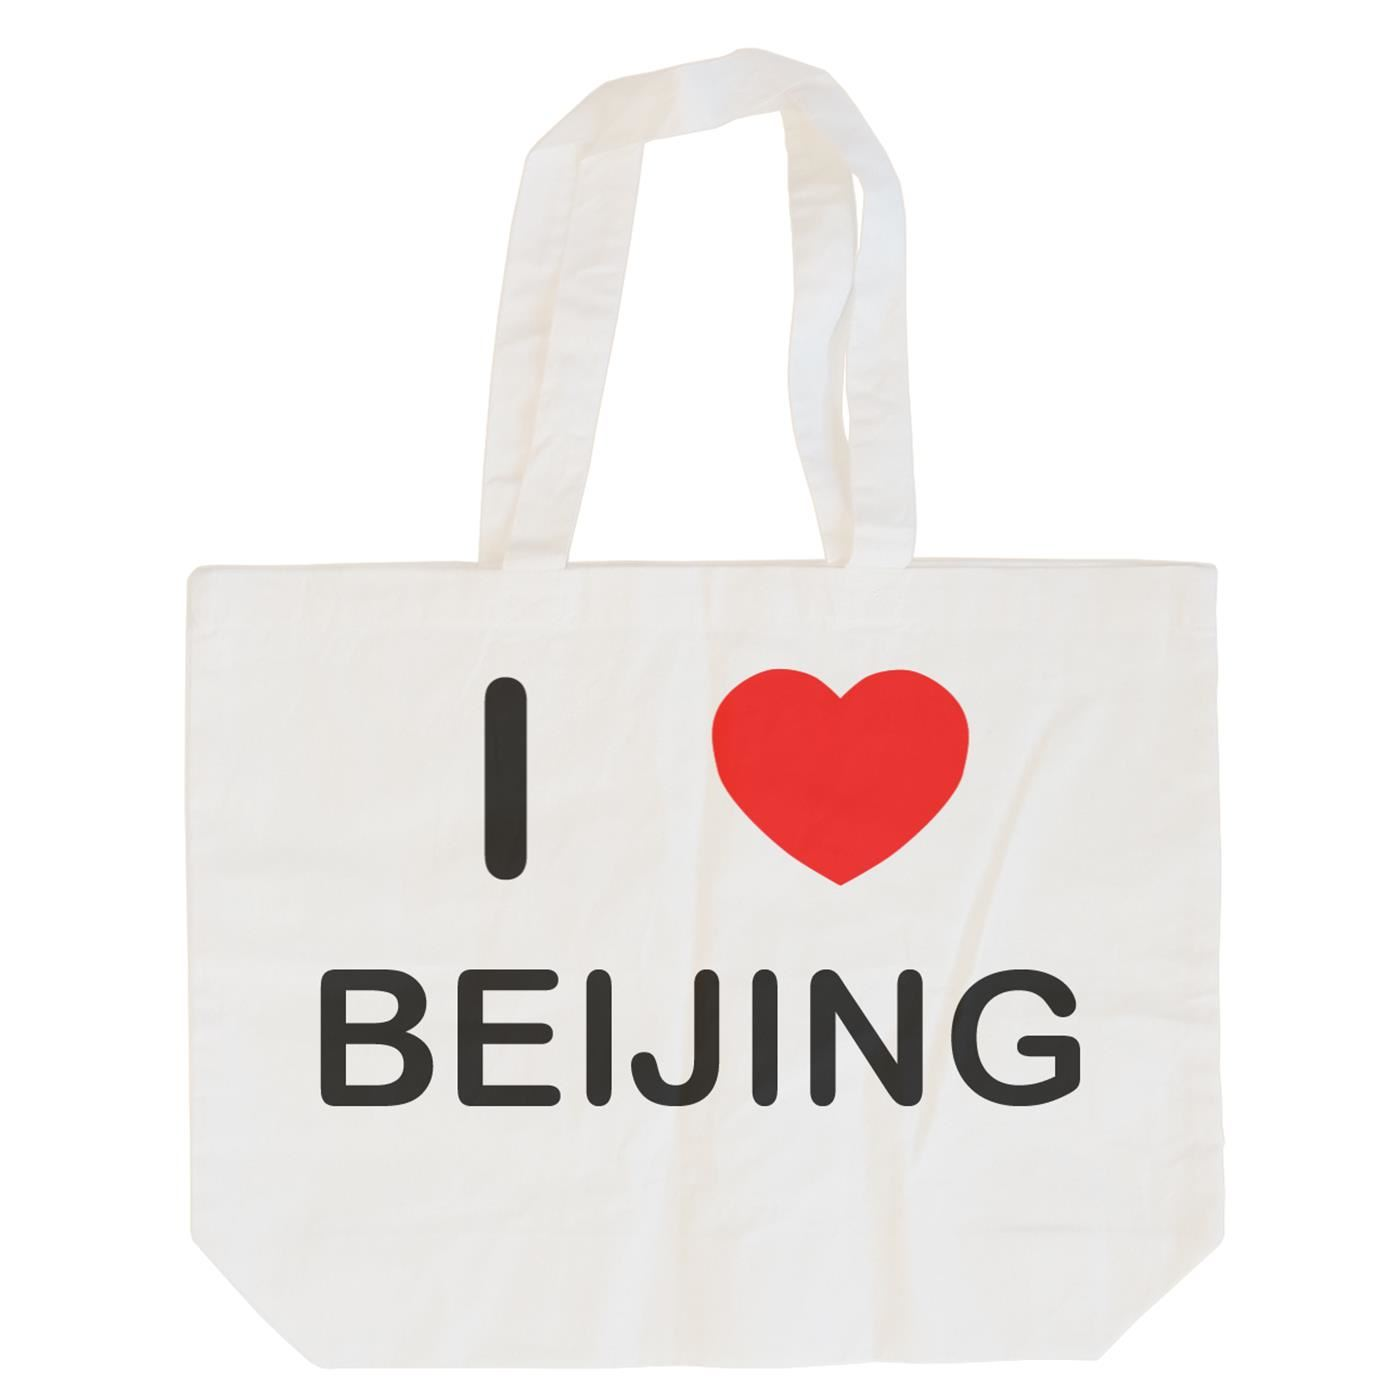 I Love Beijing - Cotton Bag | Size choice Tote, Shopper or Sling